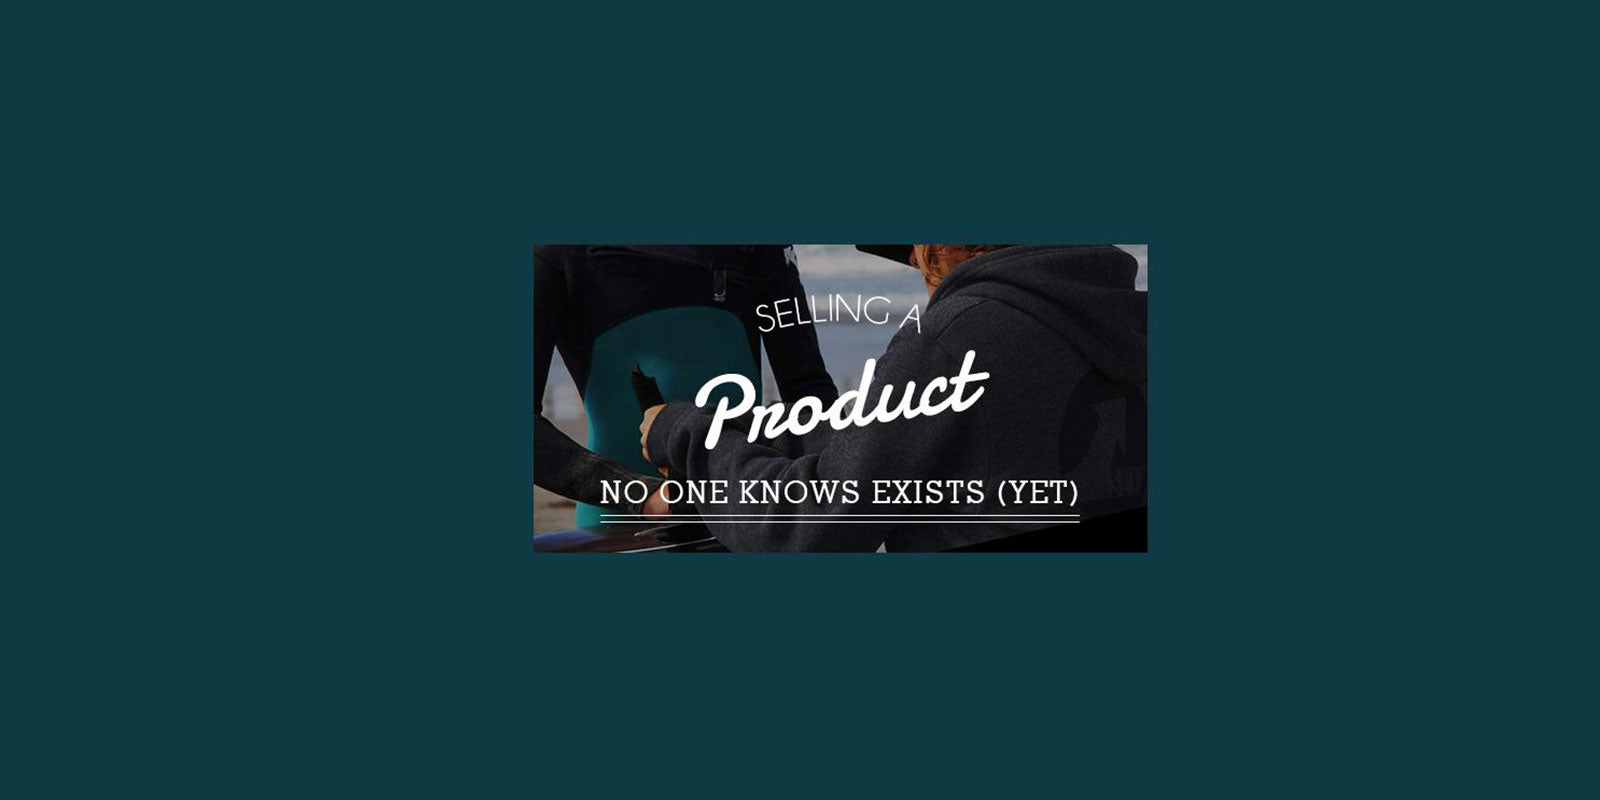 Shopify Masters Interview: Selling a product very few people know exist